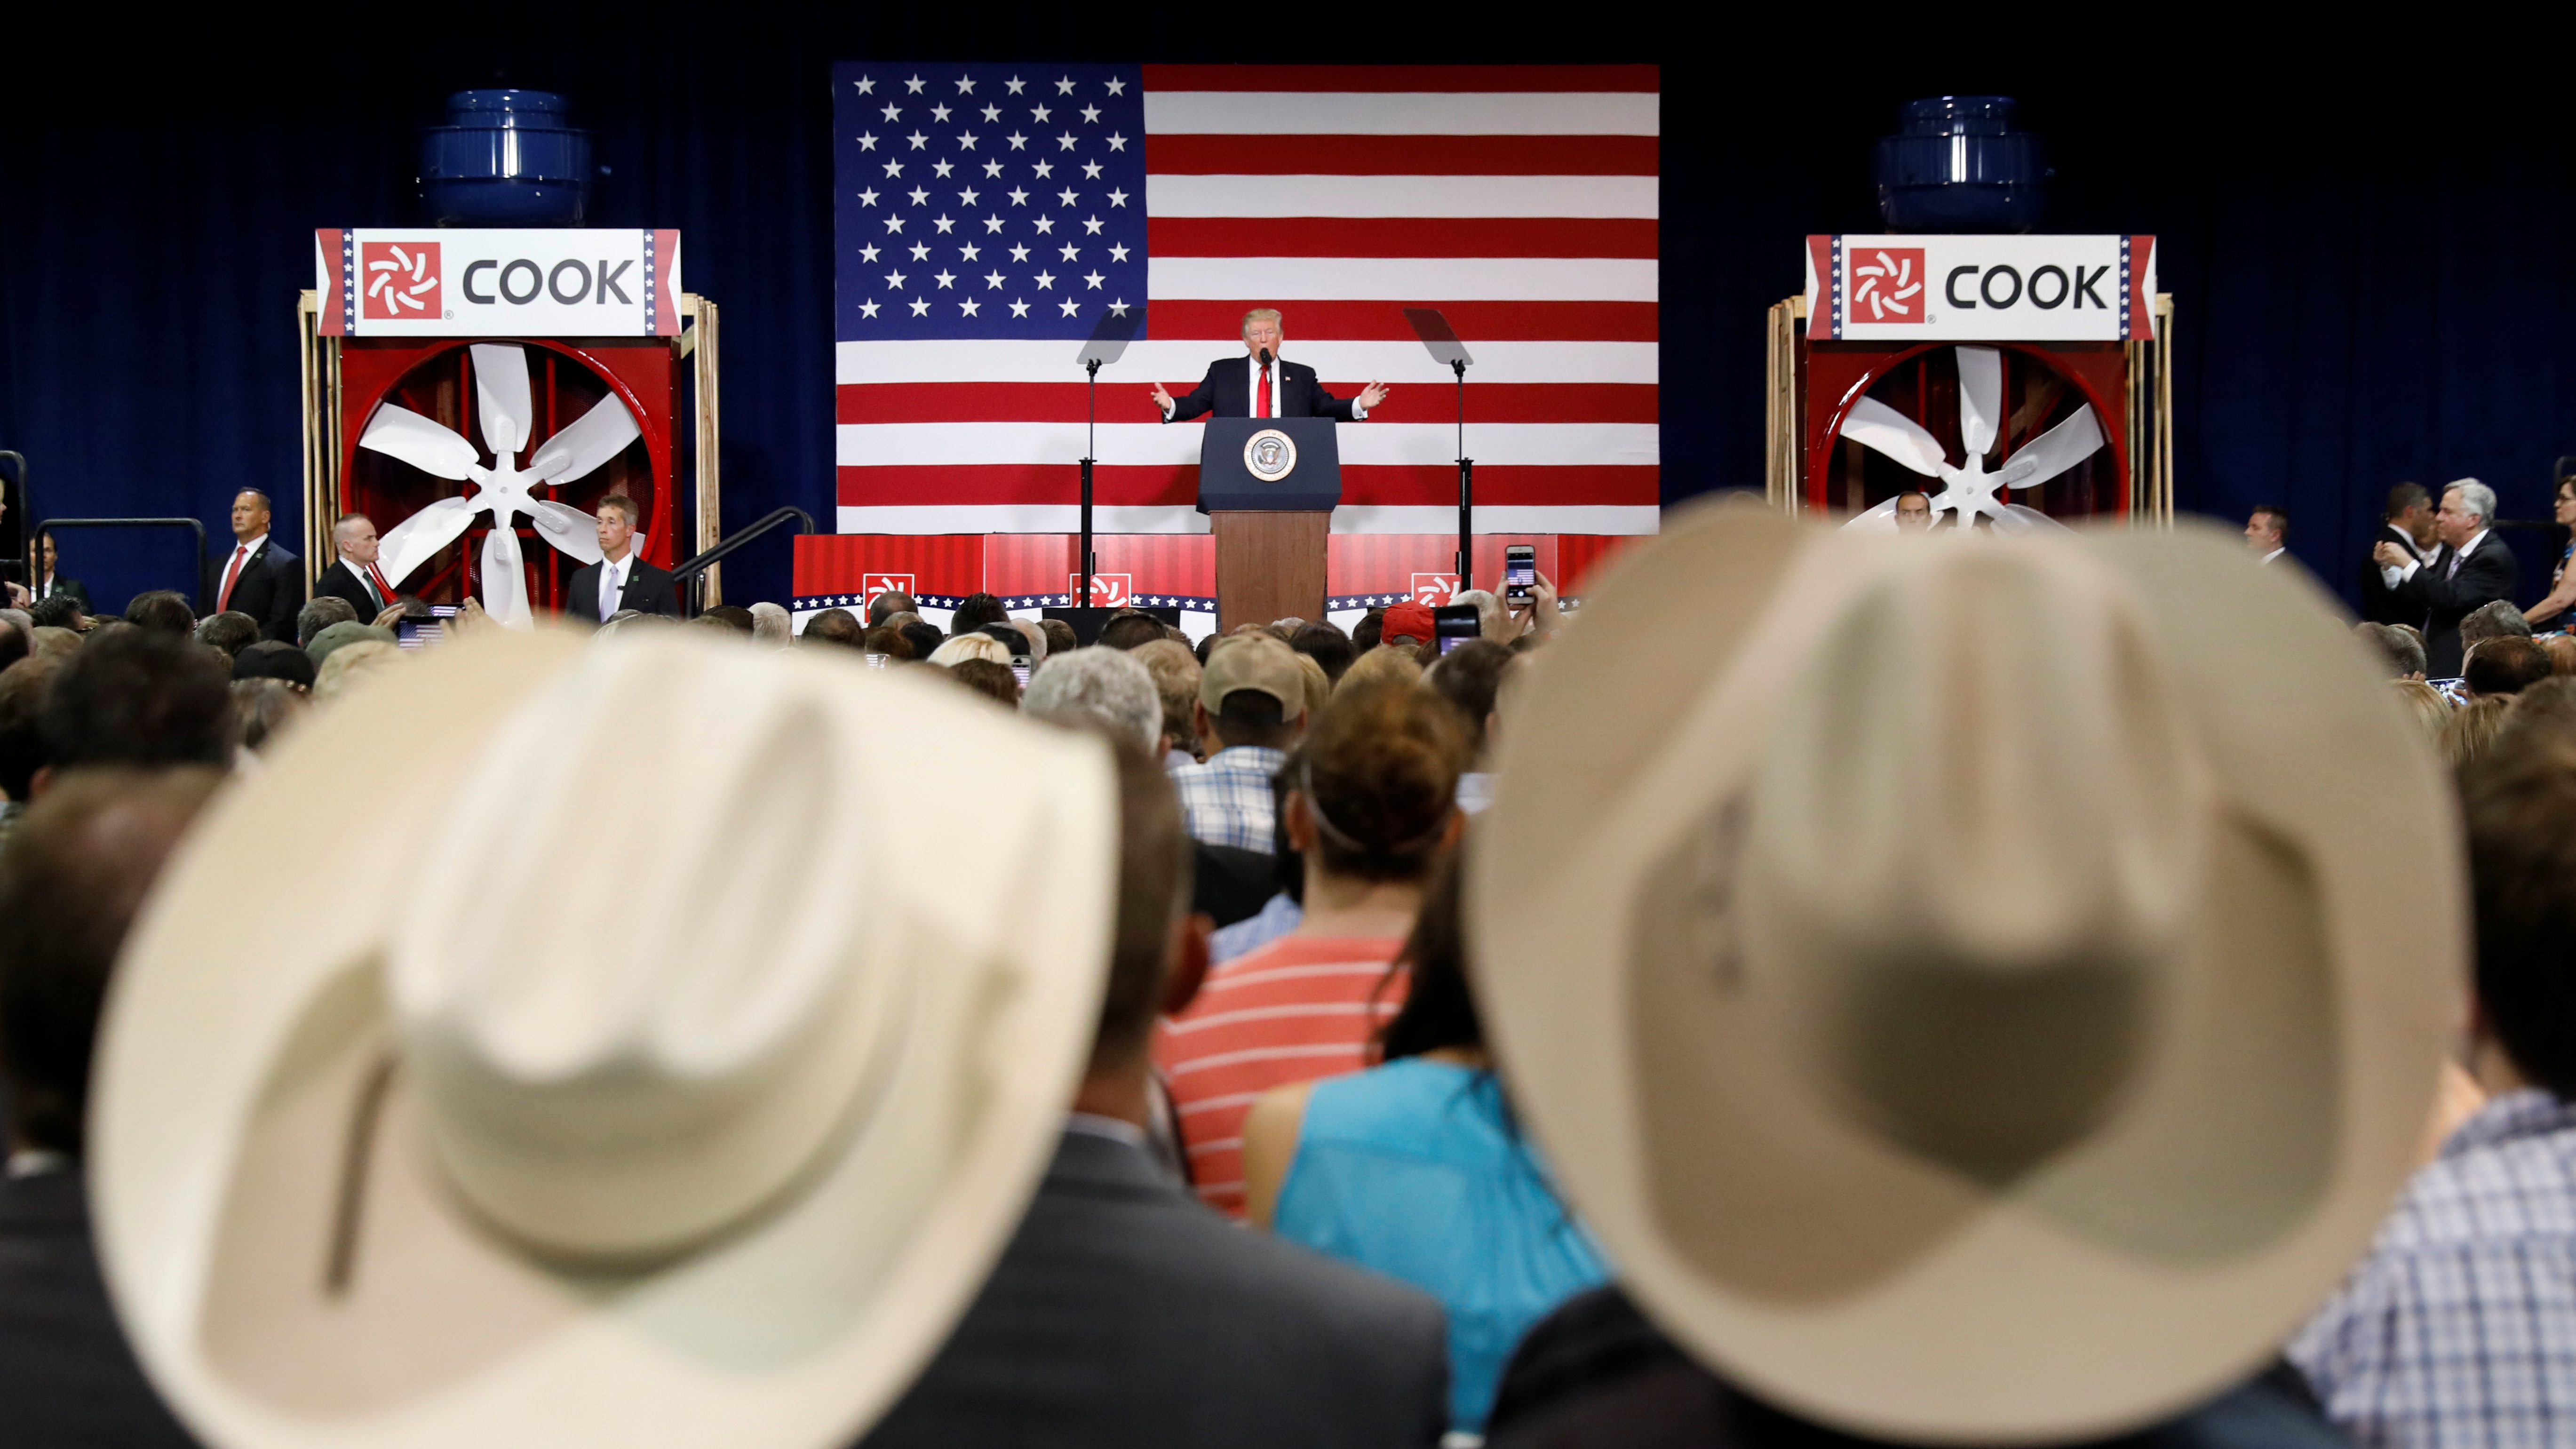 Supporters wearing cowboy hats listen as U.S. President Donald Trump speaks about tax reform during a visit to Loren Cook Company in Springfield, Missouri, U.S., August 30, 2017. REUTERS/Kevin Lamarque - RTX3E1WV